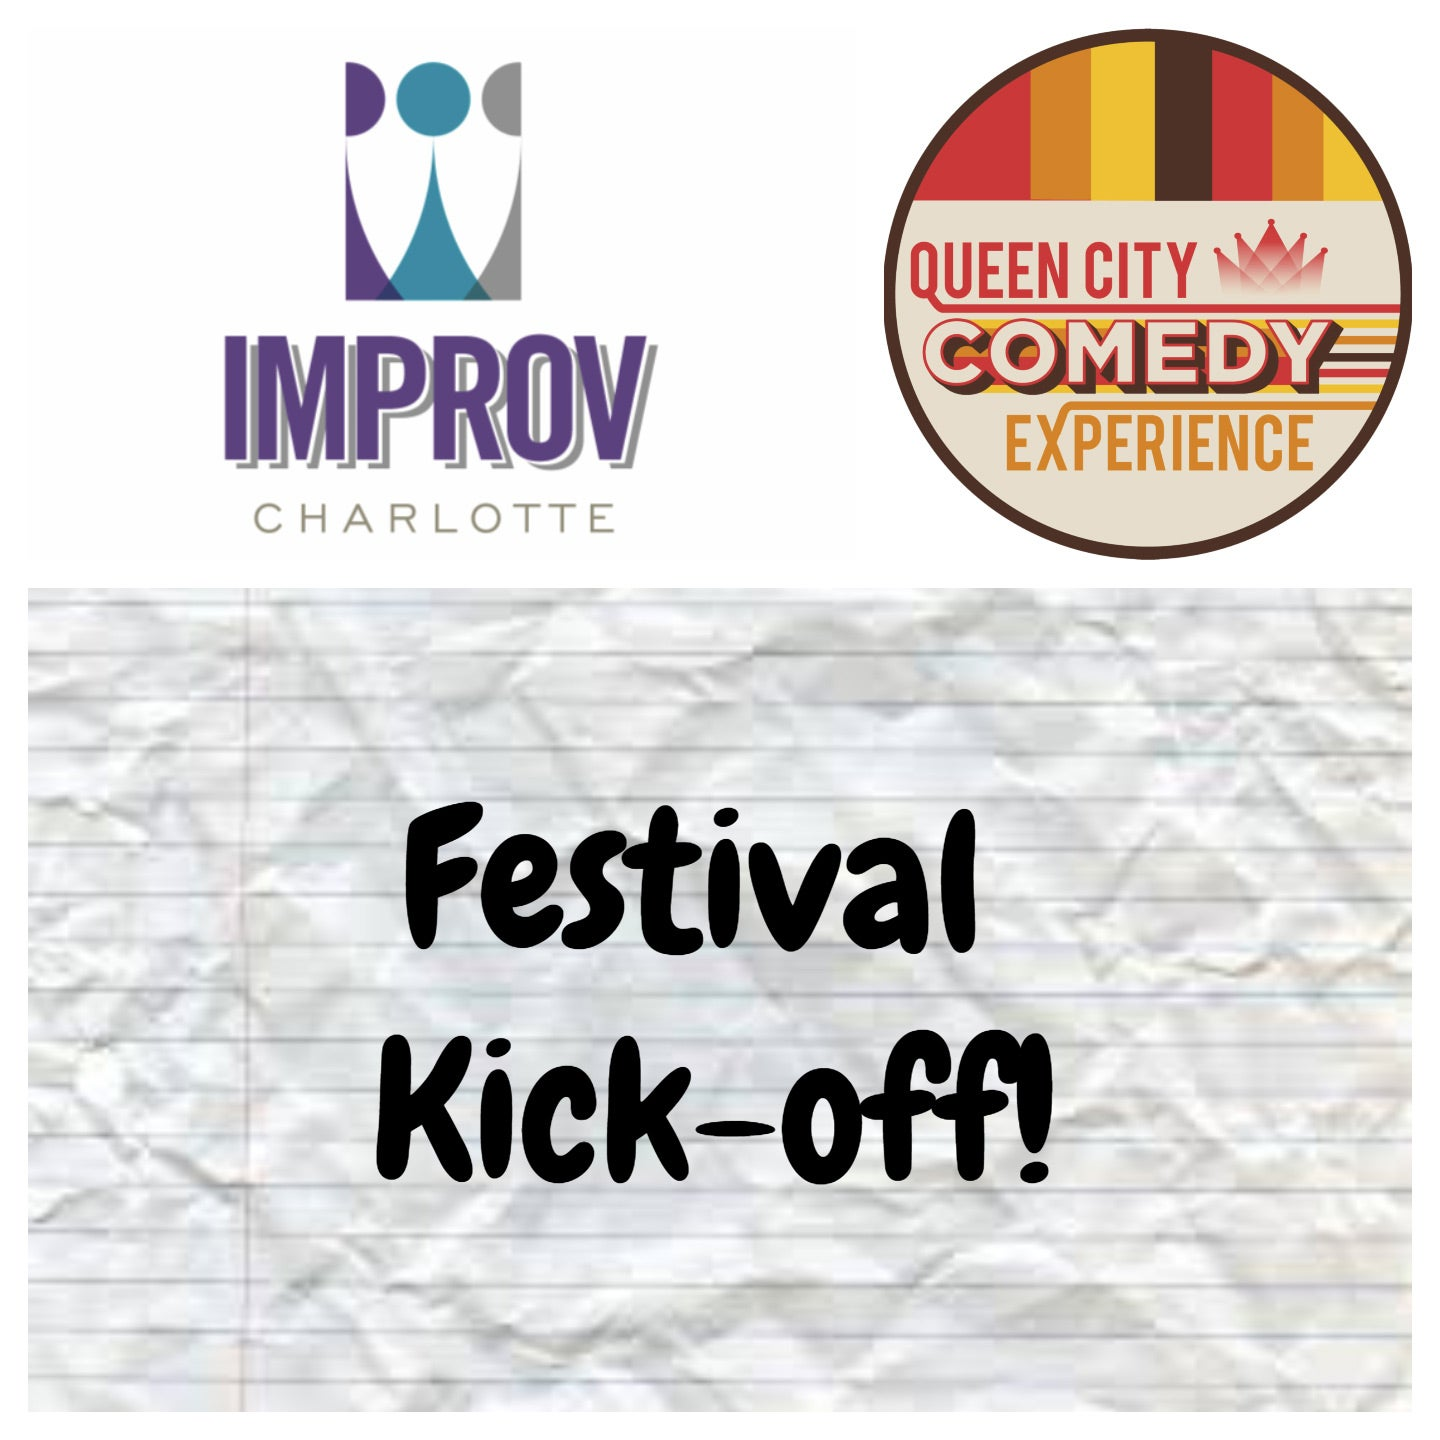 Festival Kickoff Show featuring Improv Charlotte